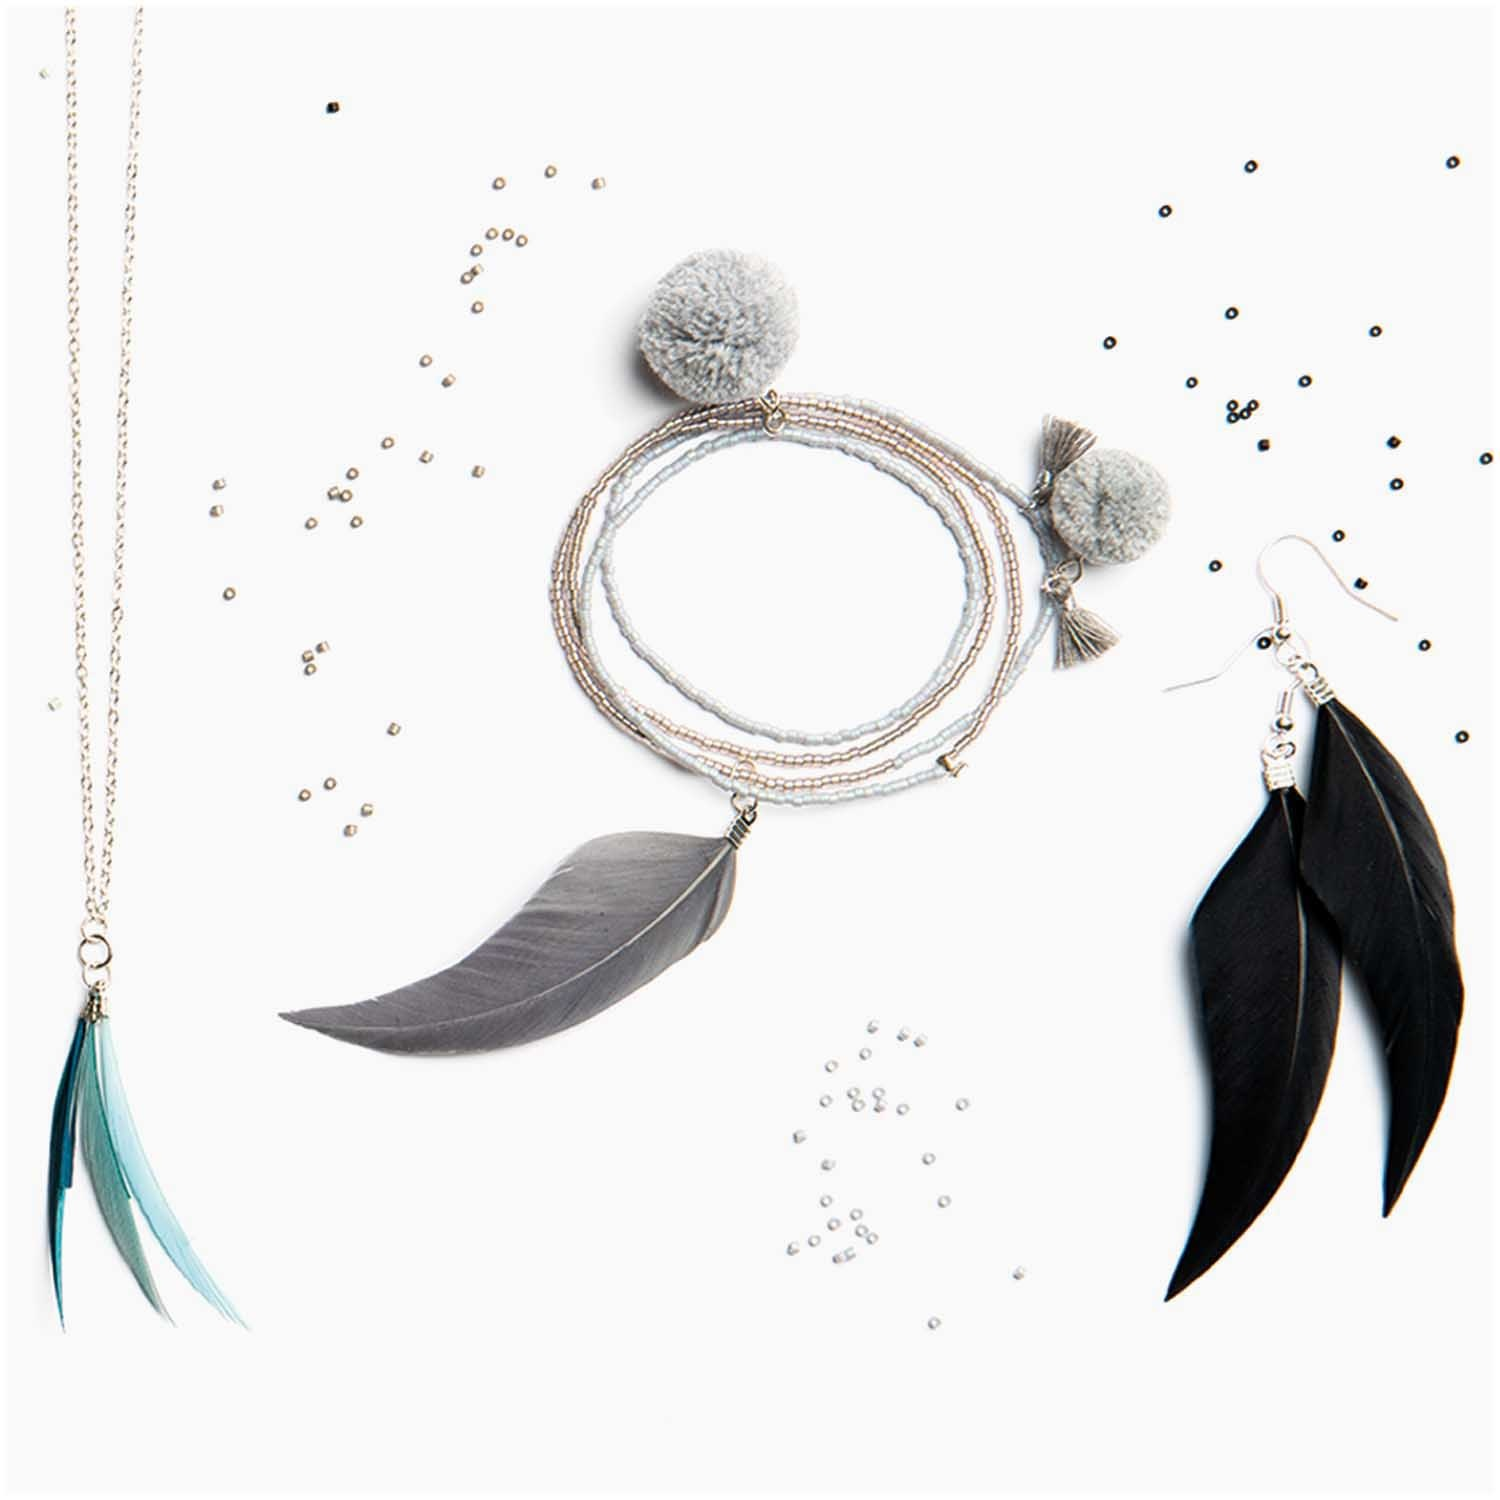 Rico NAY FEATHERS, TURQUOISE 2 PCS, WITH SILVER EYELET